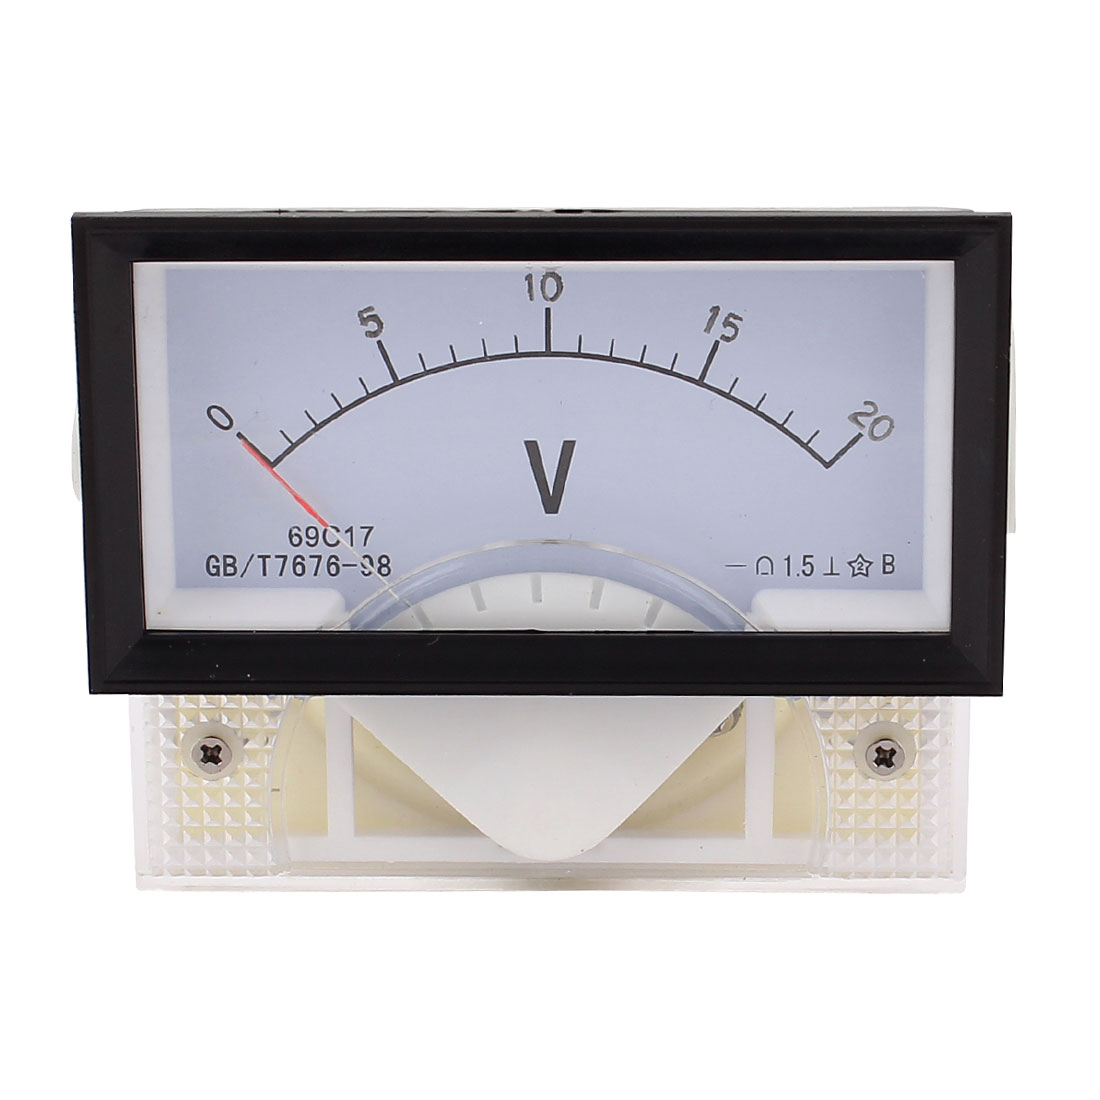 DC 0-20V Class 1.5 Clear Plastic Rectangle Panel Analog Gauge Voltmeter Voltage Meter